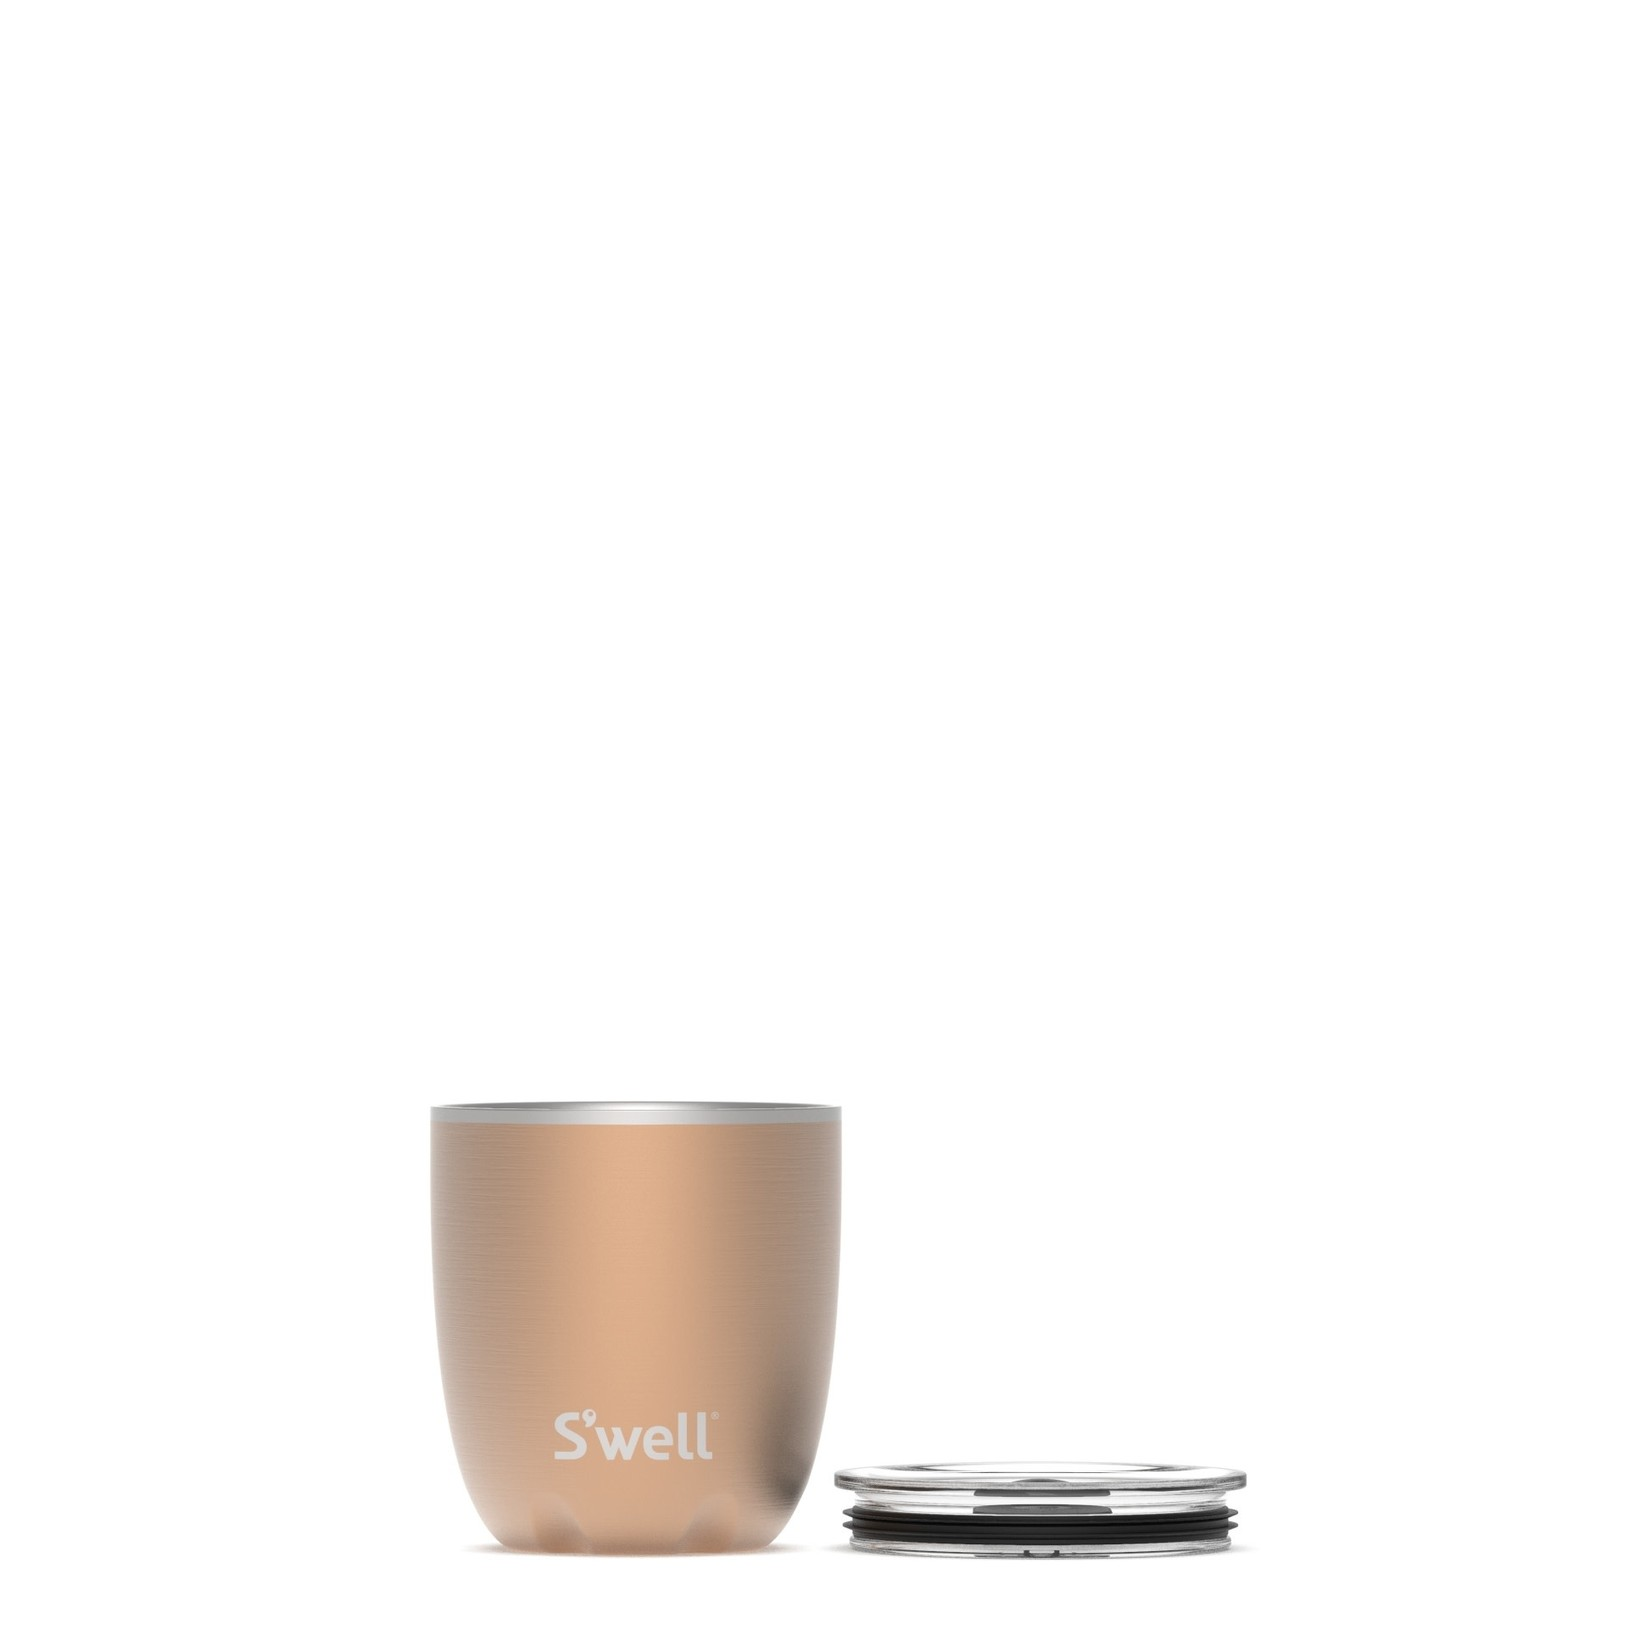 S'well S'well Bottle 10oz Tumbler w/Lid Pyrite